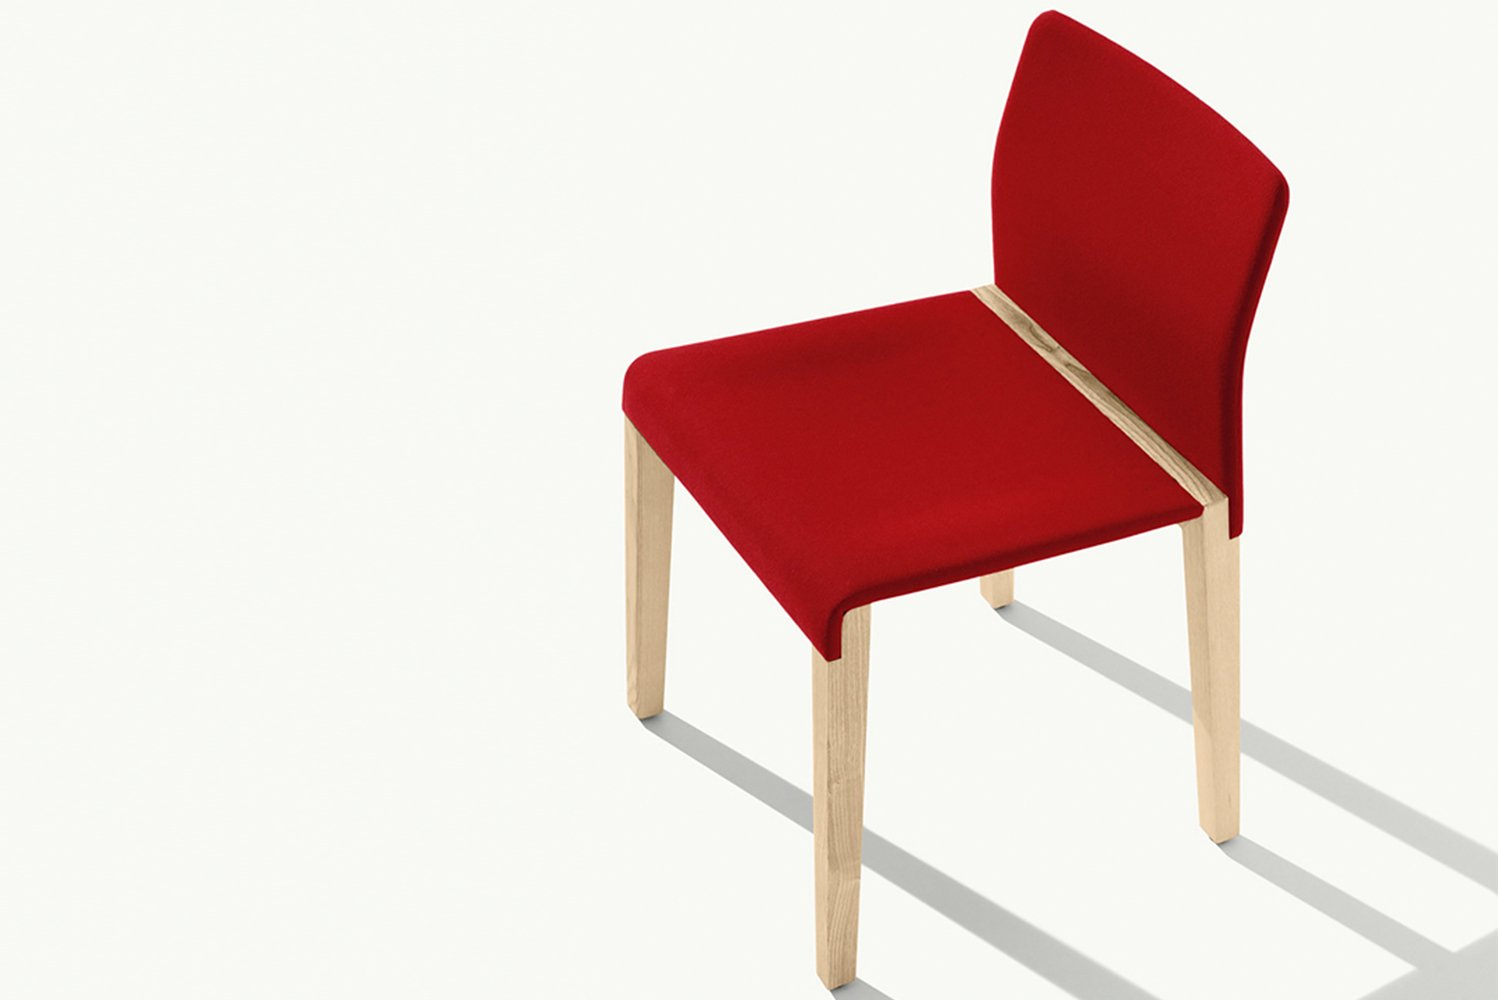 Designed by Giulio Iacchetti, Dalton has a clean, graphic design with an innovative construction and solid wood frame.